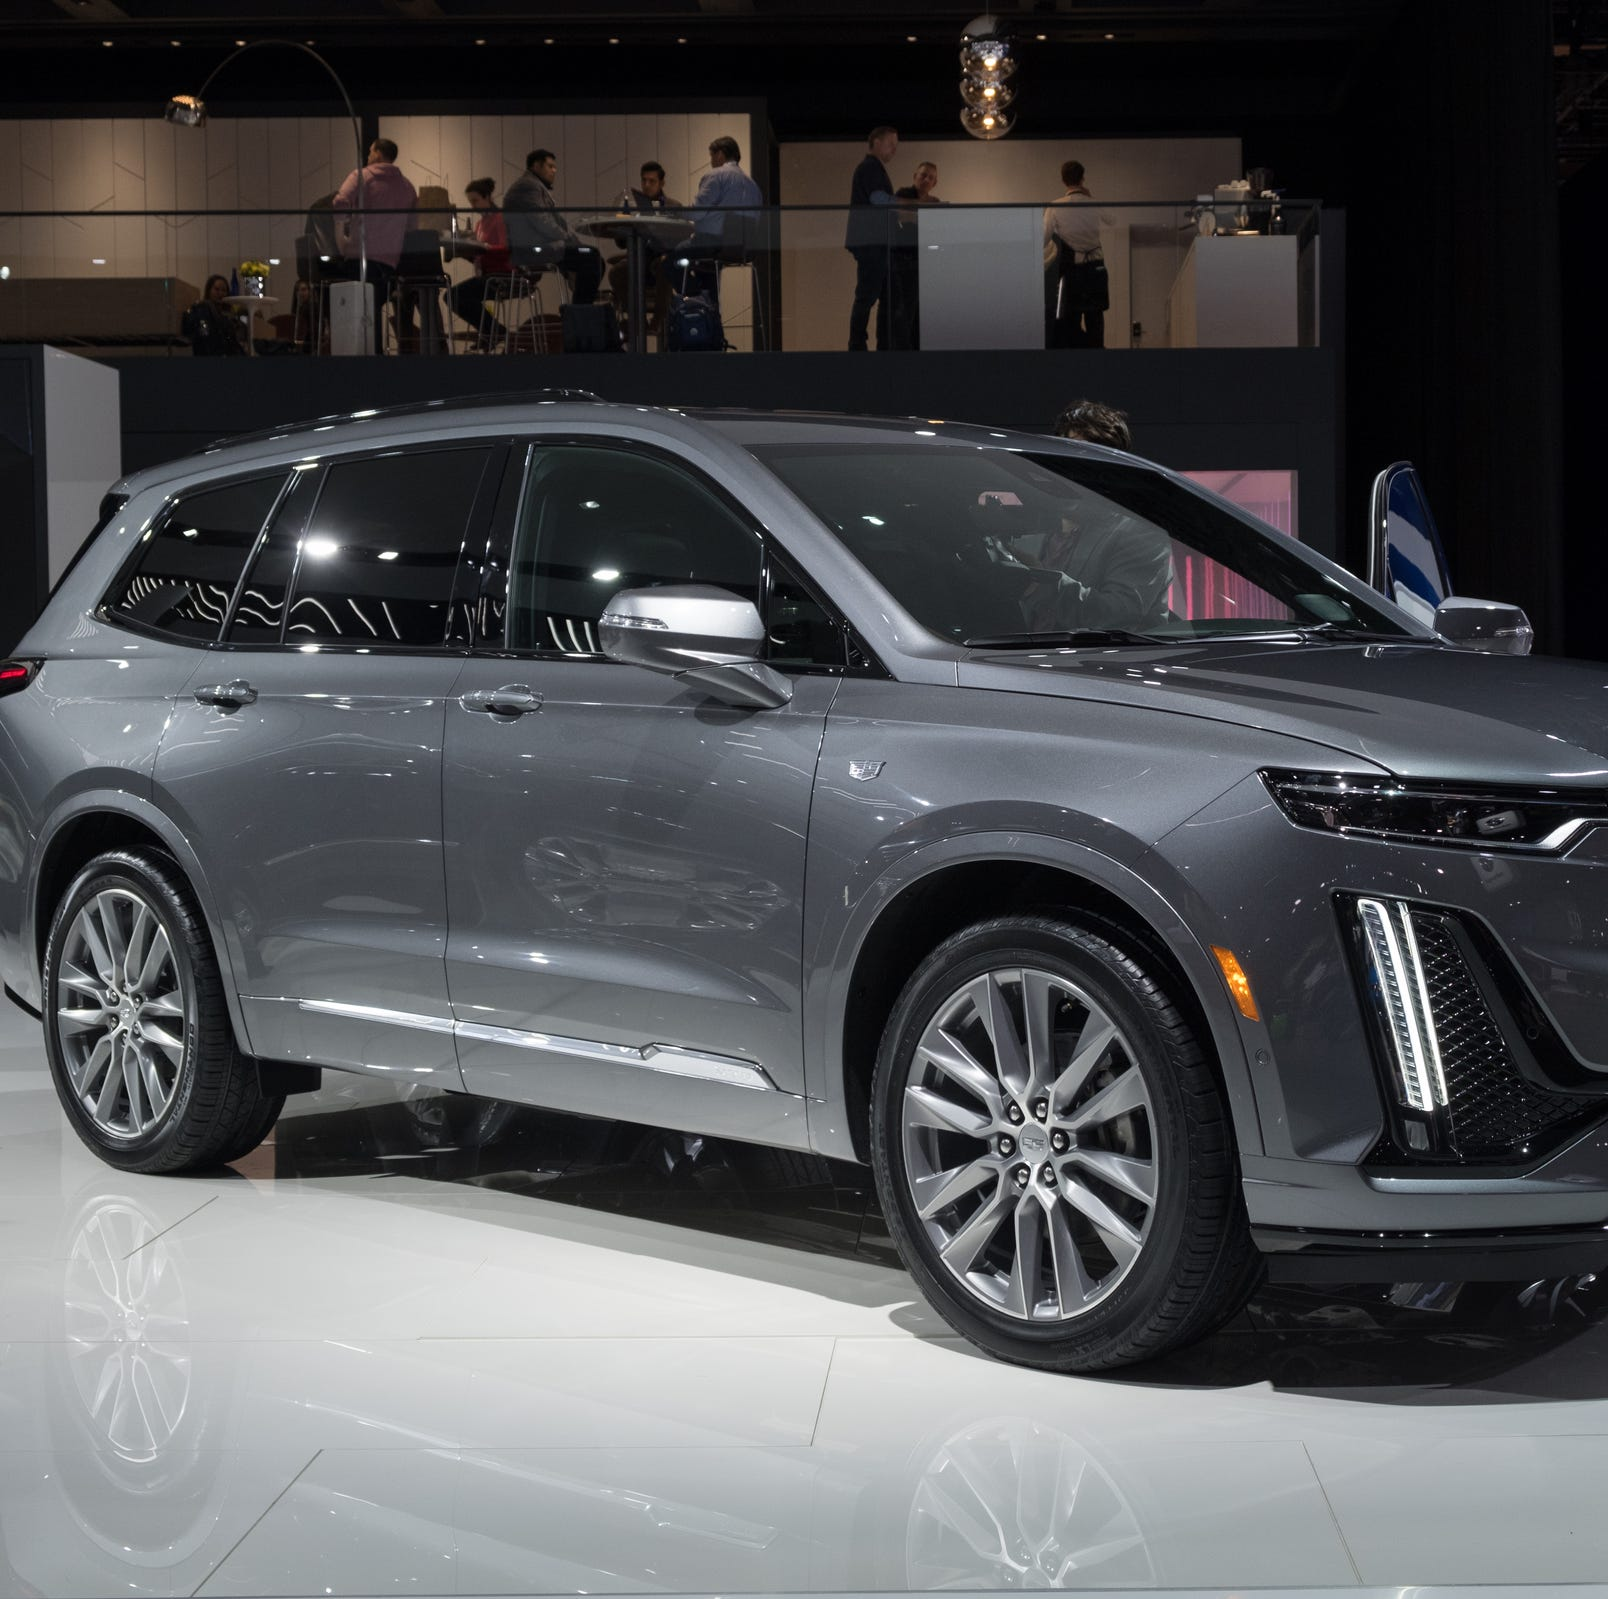 'Perfectly nice' isn't good enough for Cadillac's new XT6 SUV